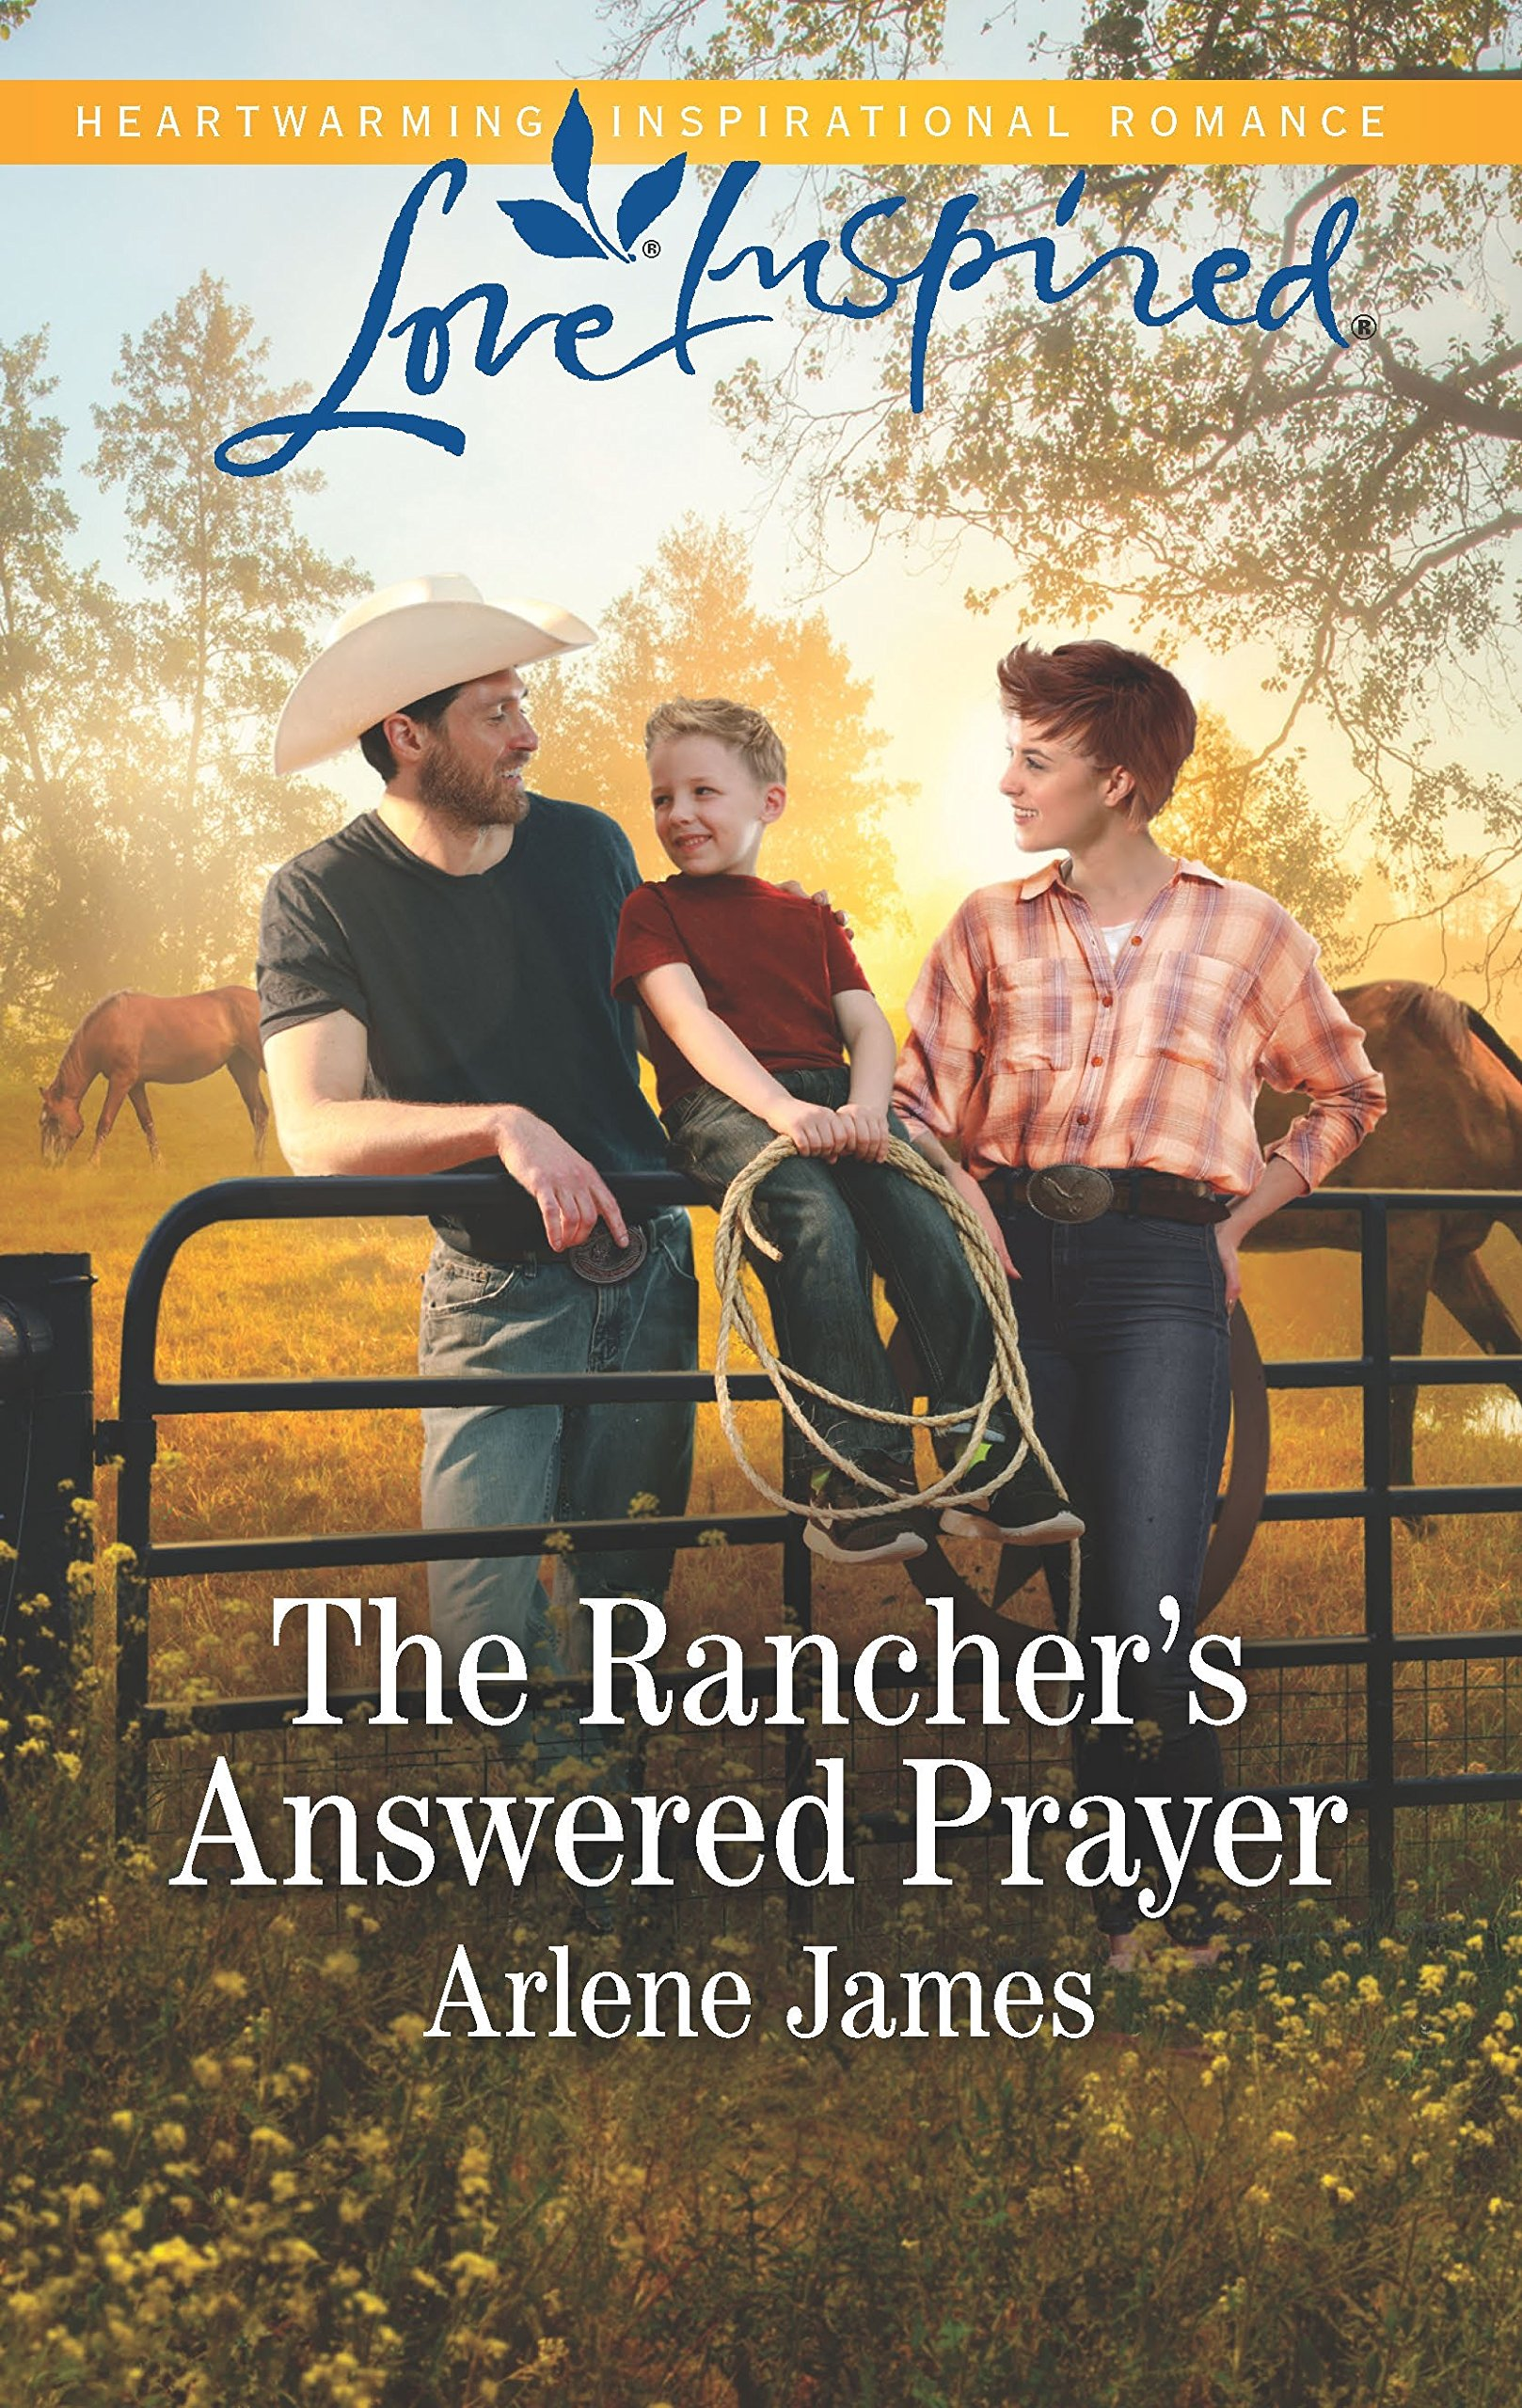 Image result for the rancher's answered prayer arlene james